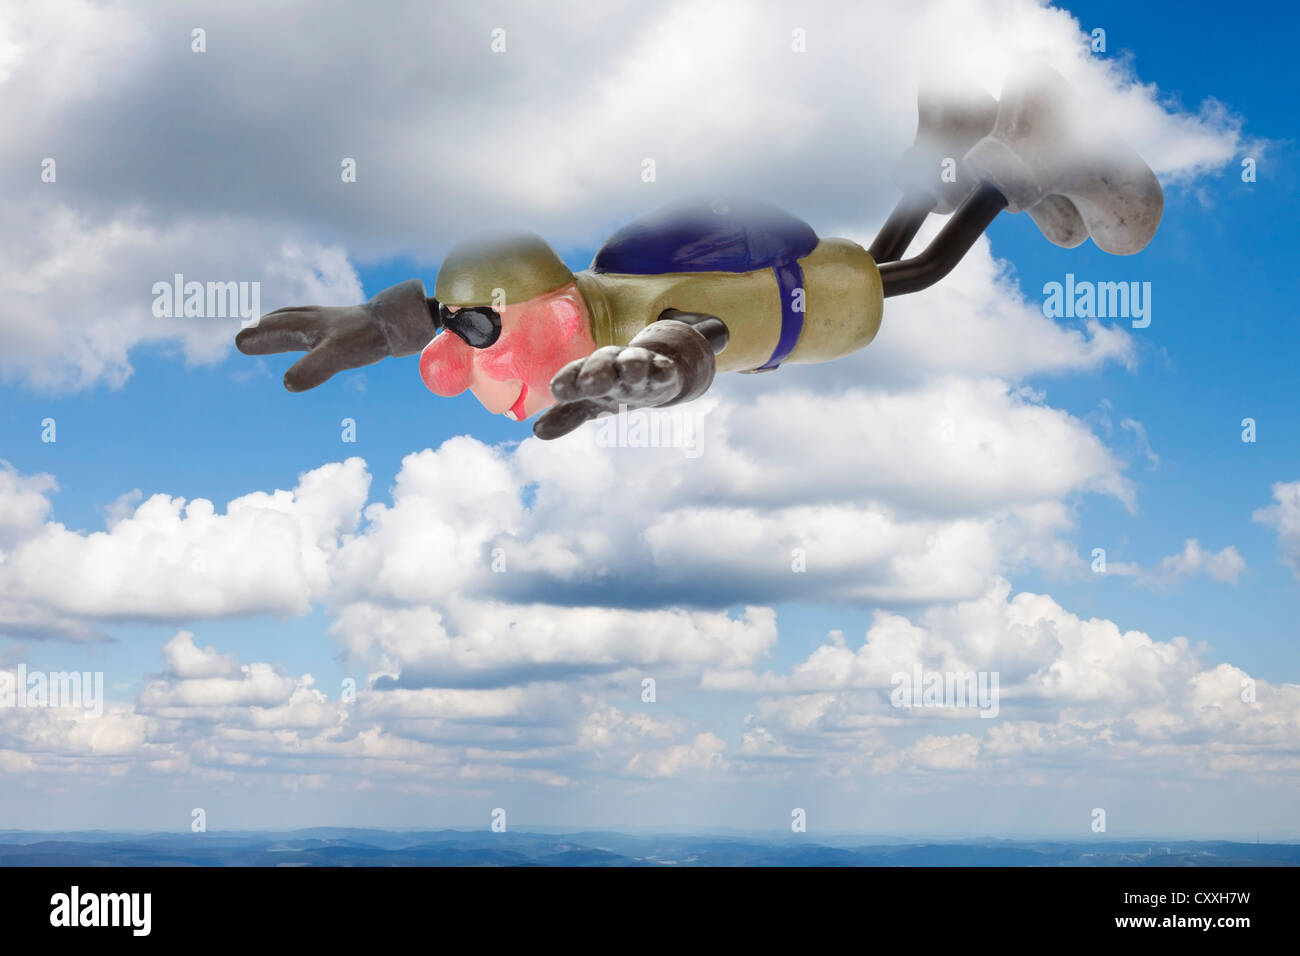 Cartoon character, basejumper in gliding flight through clouds - Stock Image